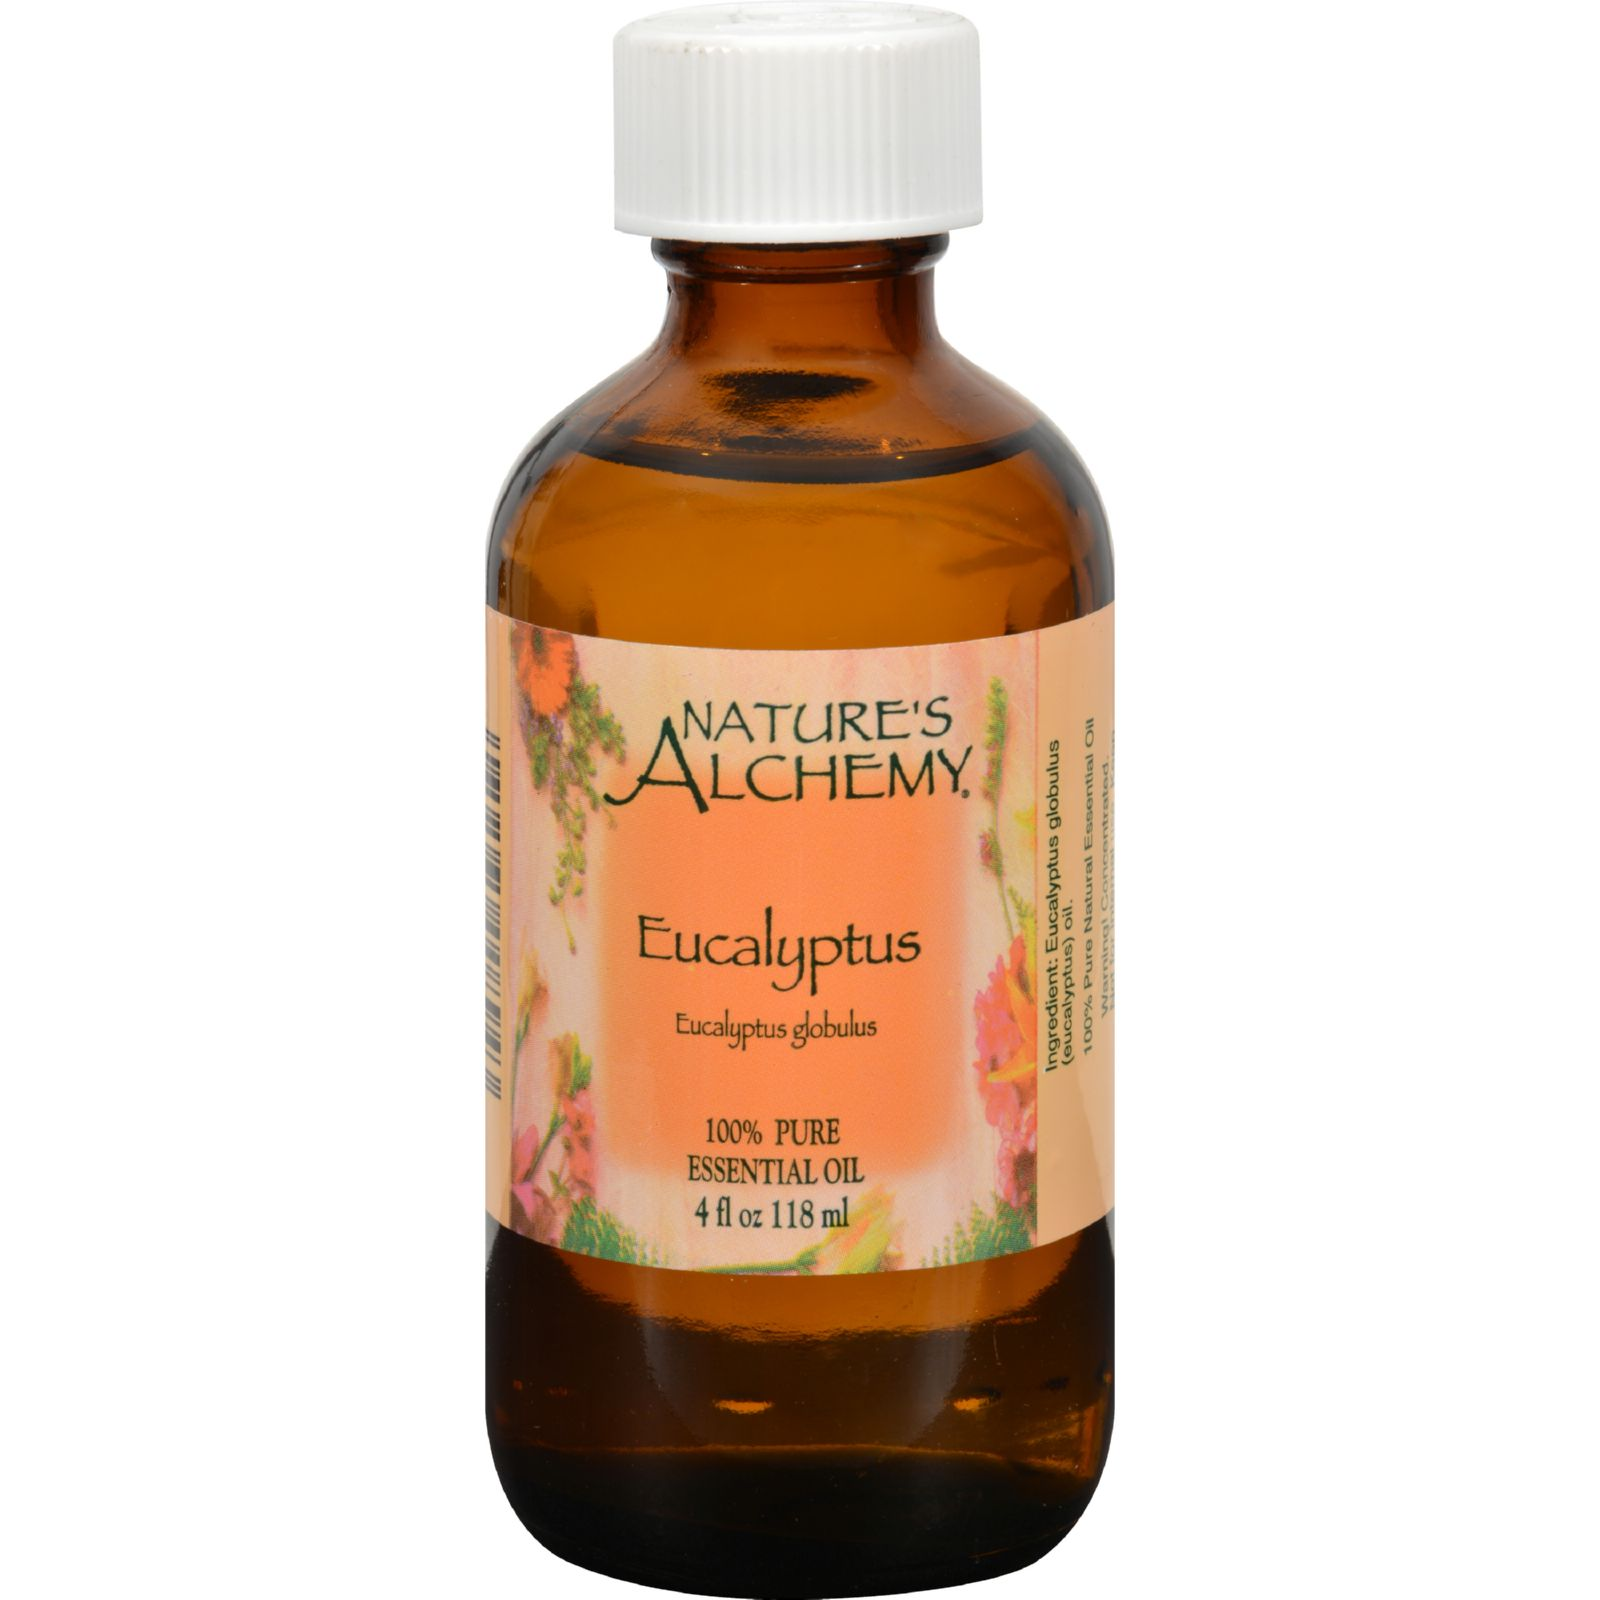 Nature's Alchemy Essential Oil - 100 Percent Pure - Eucalyptus - 4 fl oz